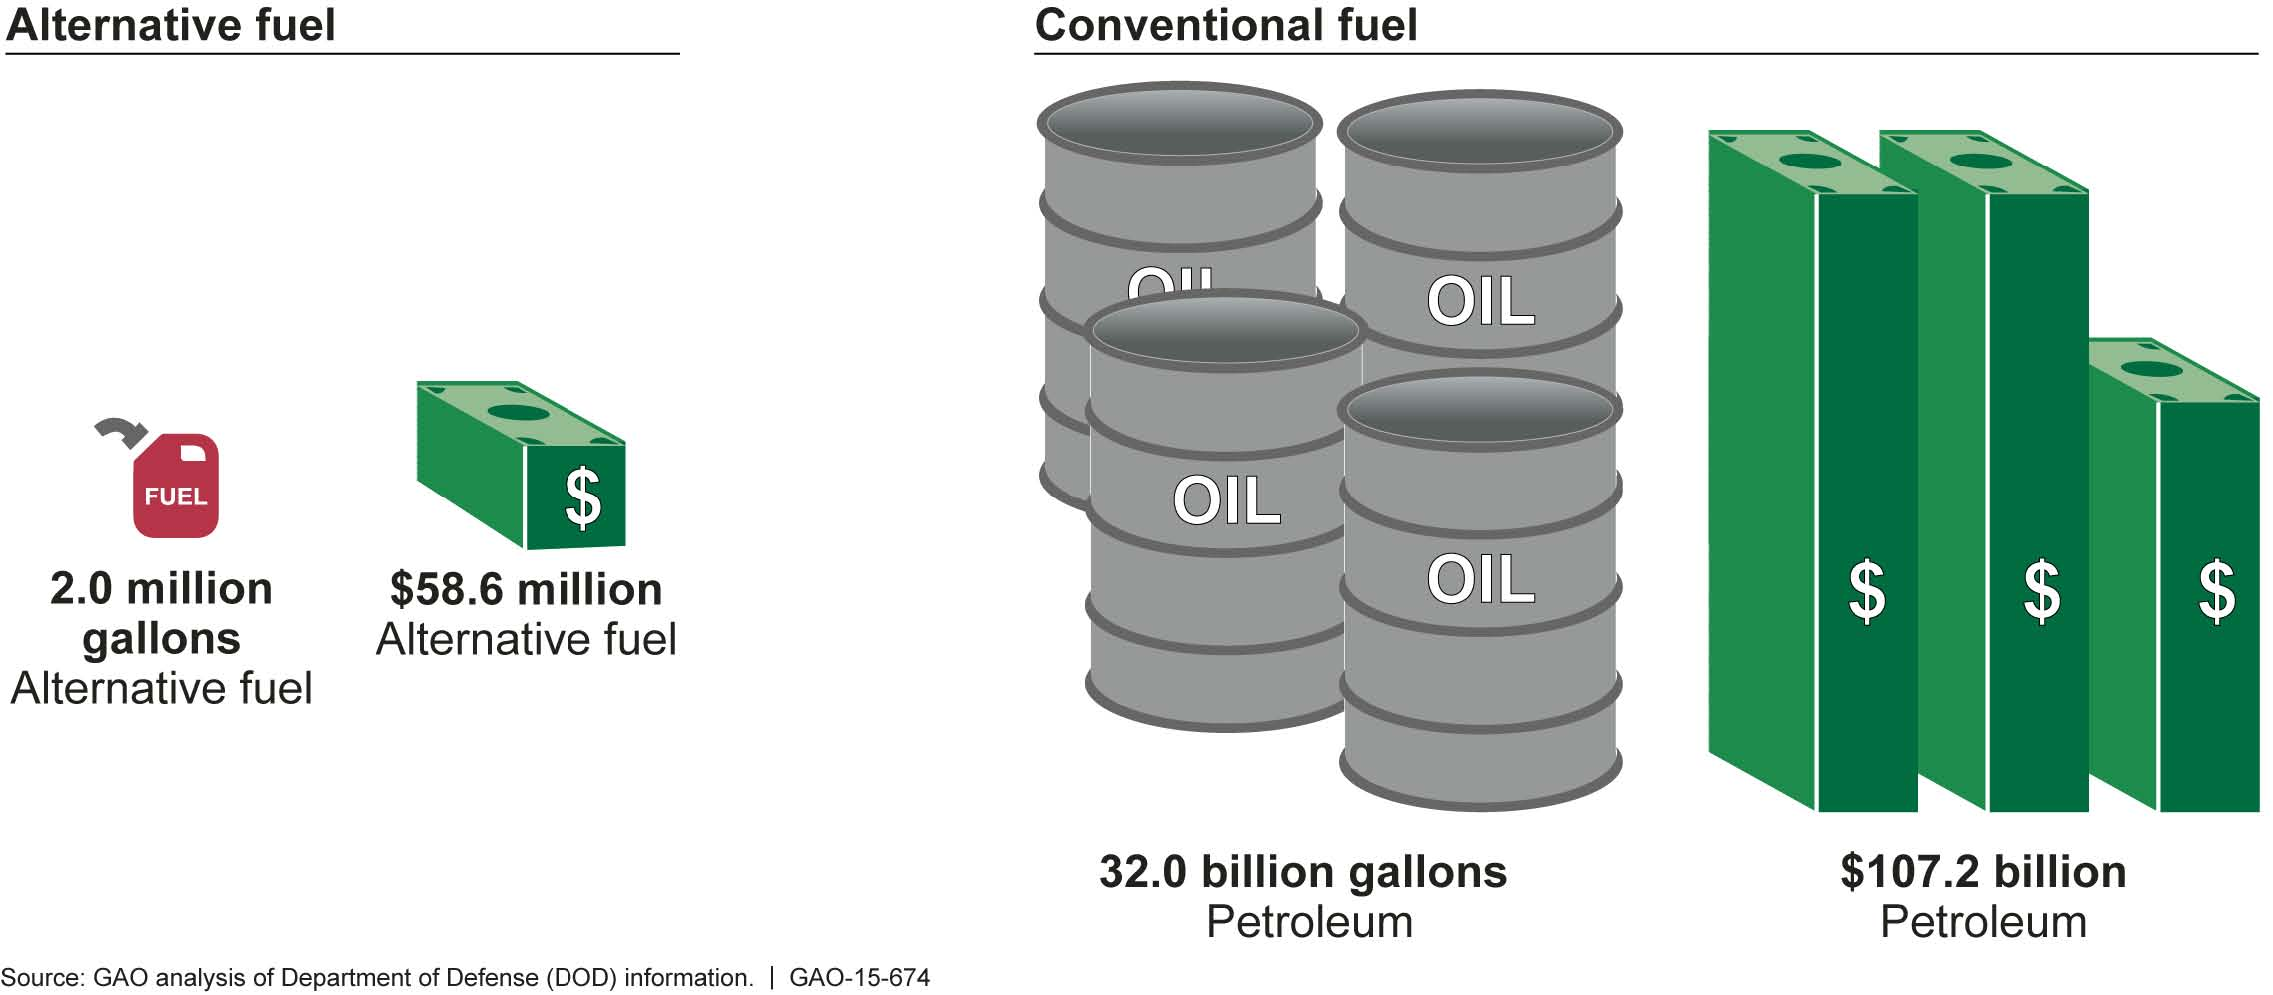 File:Figure 1- Military Departments\u0027 Total Alternative and Conventional Fuel Purchases from Fiscal